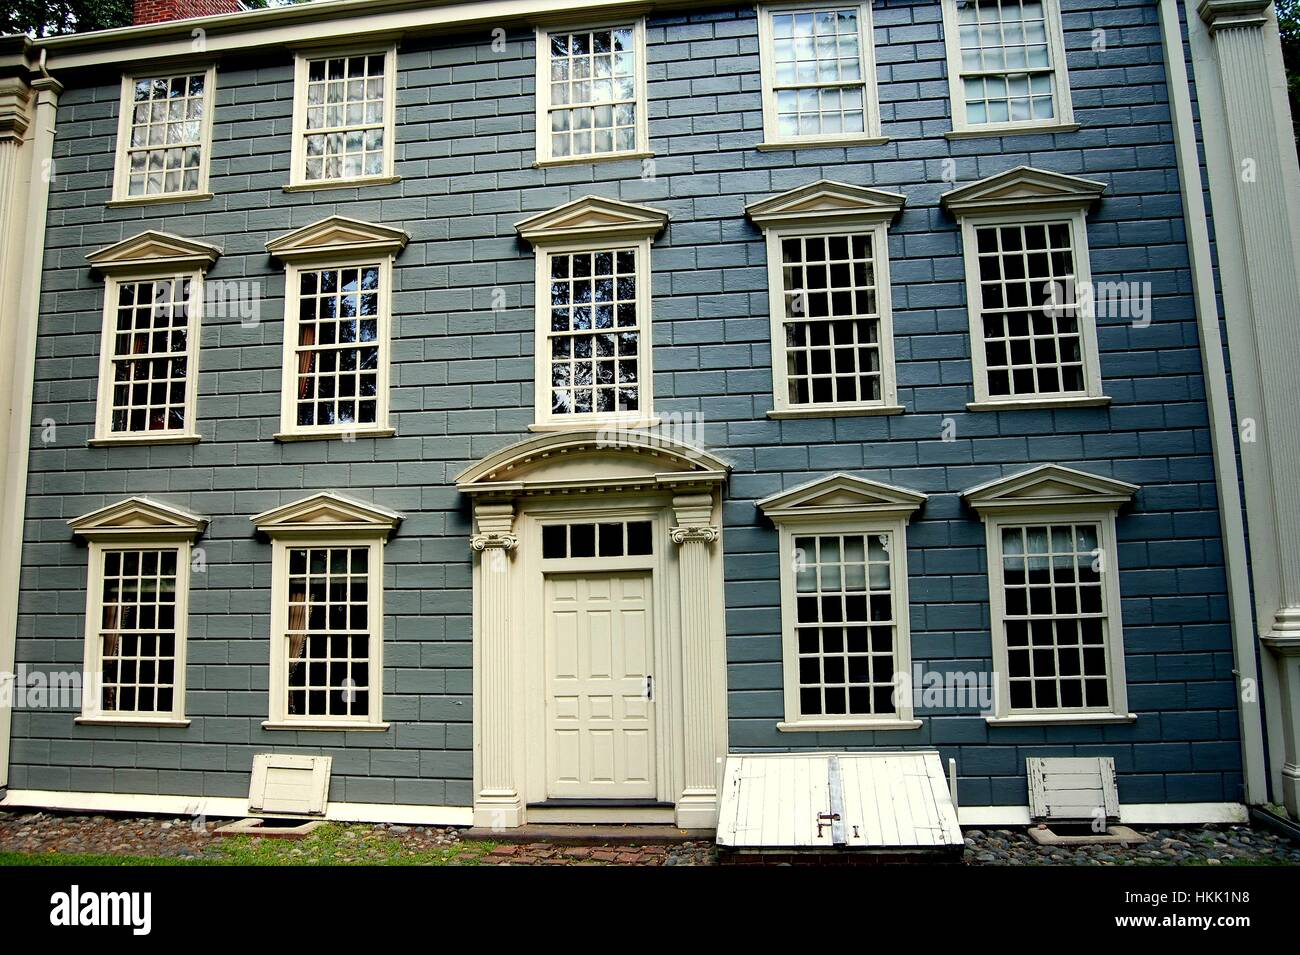 Medford, Massadchusetts- September 5, 2009:  National historic landmark 18th century Georgian Isaac Royall House - Stock Image